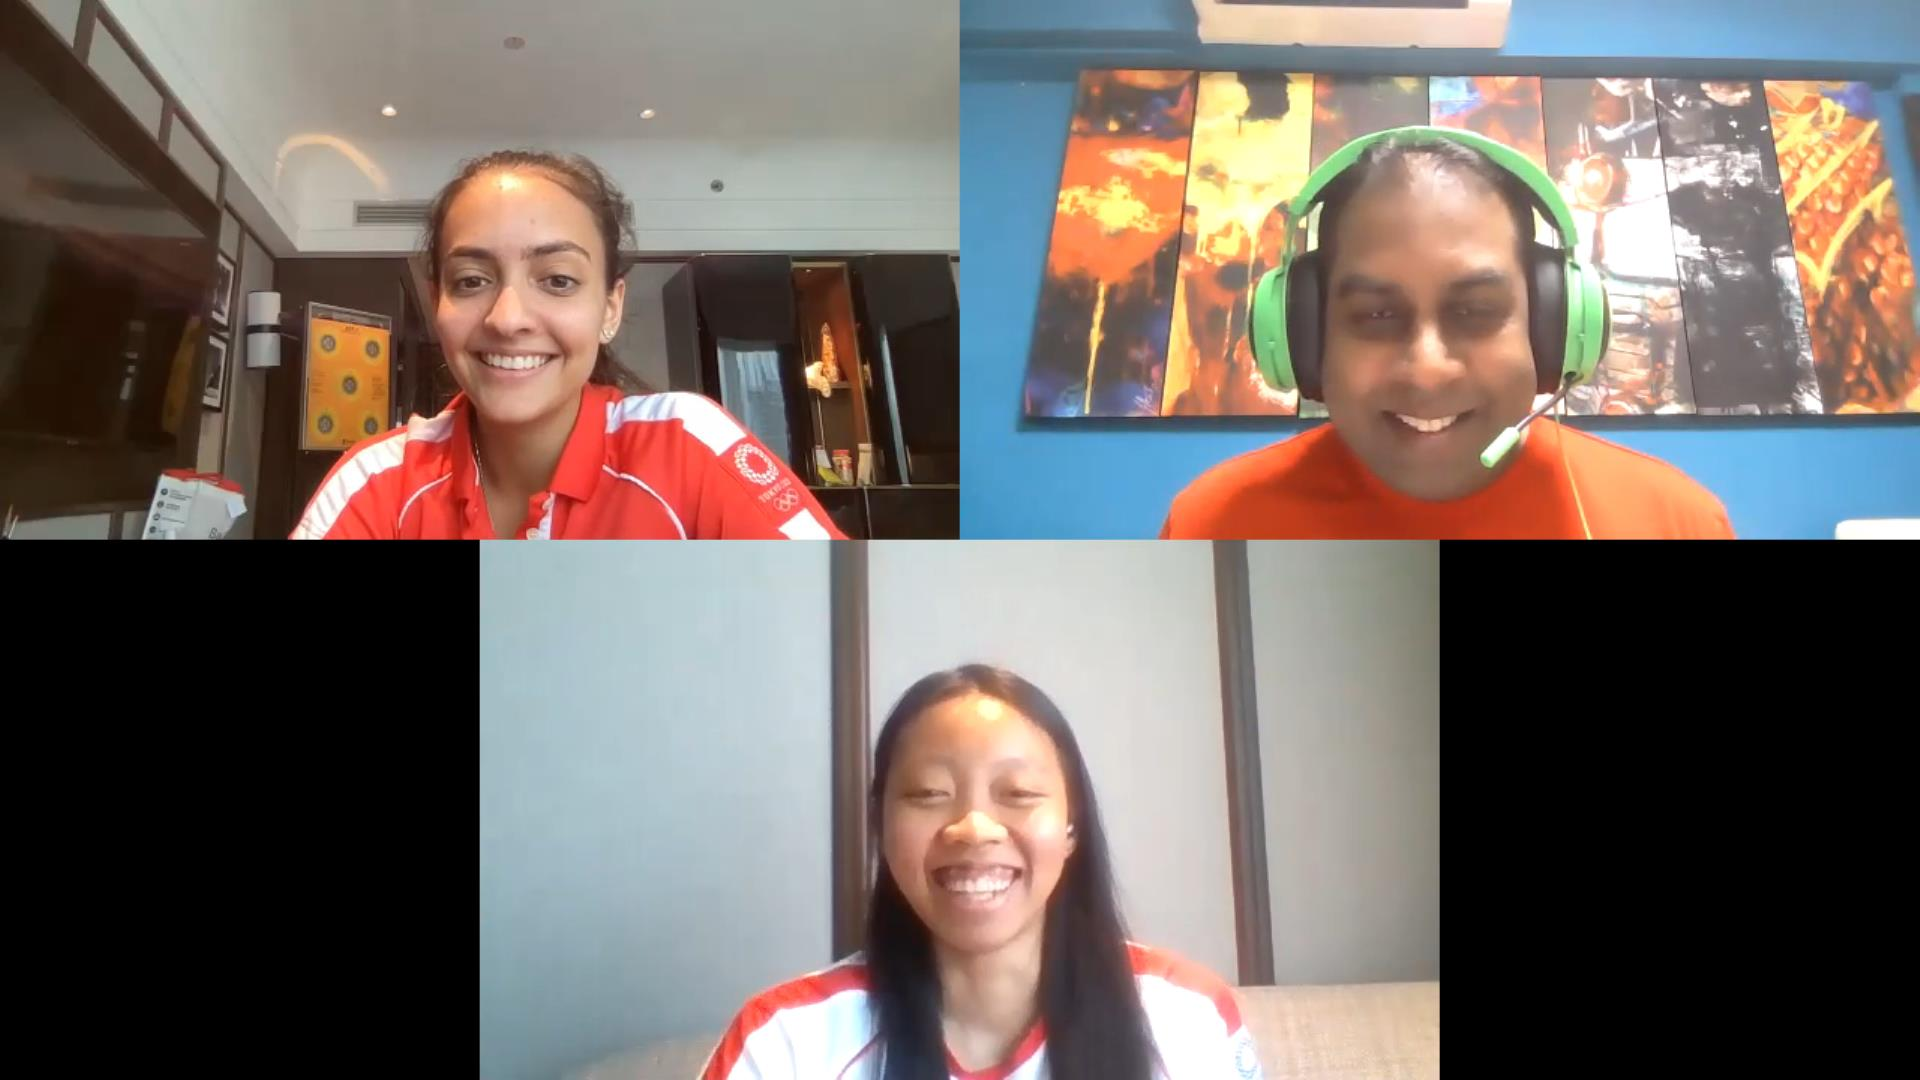 Tokyo 2020 - TeamSG's new Olympians Amita Berthier and Kiria Tikanah, are confident of stronger performances against world's best in the future!